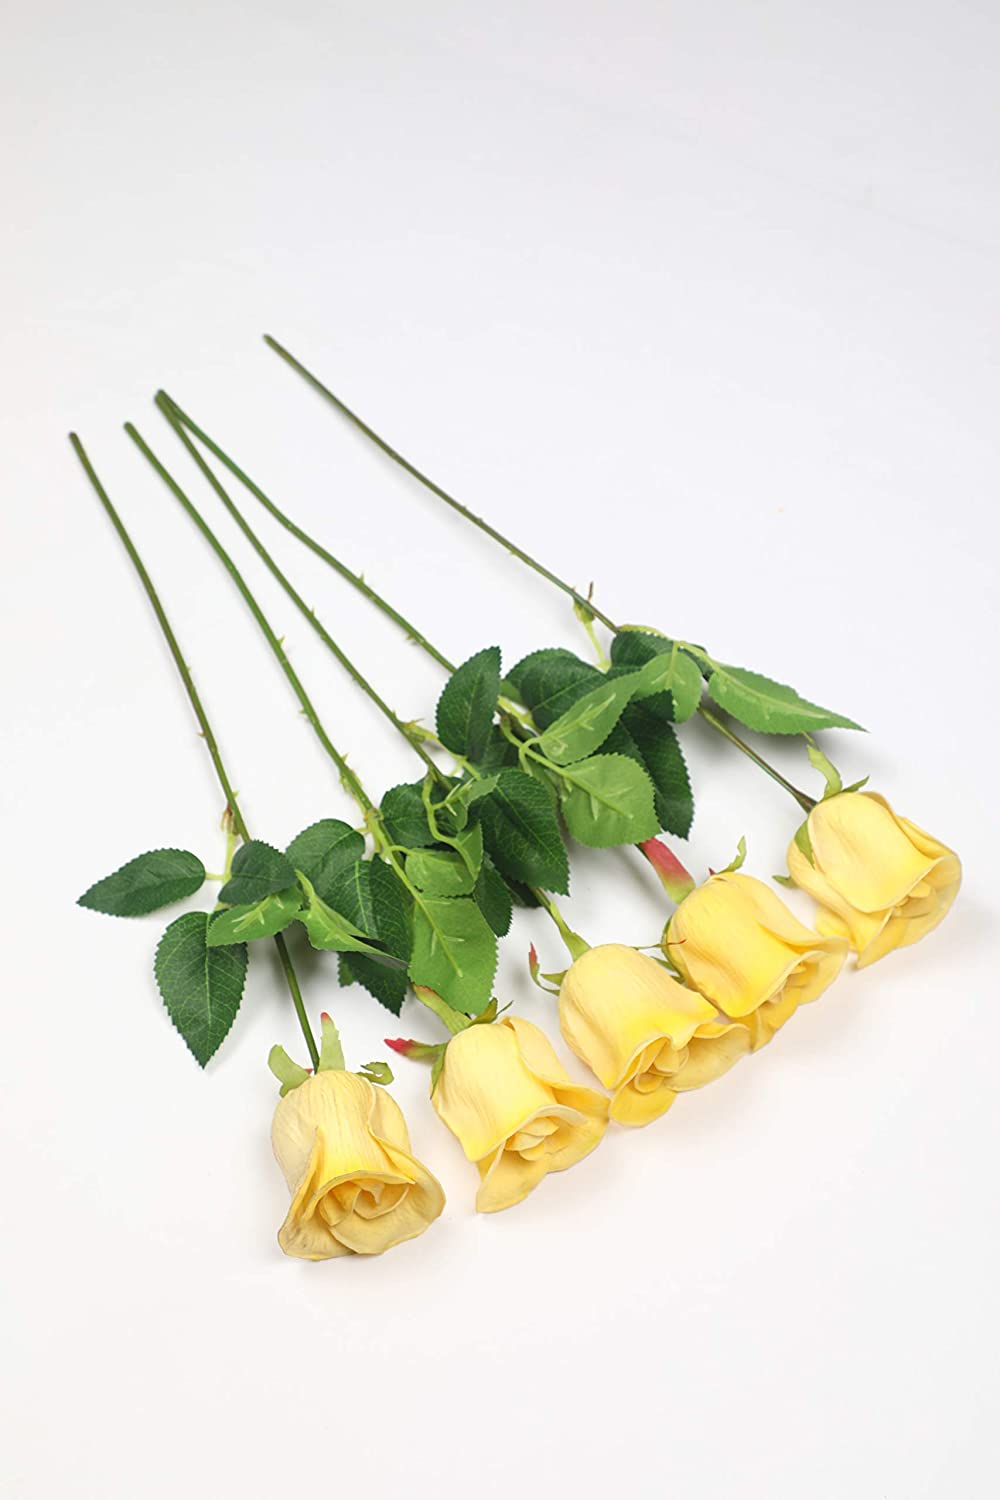 Pollination Luxurious Real Look Peach Rose Artificial Flowers for Home Office Restaurant Decoration (Pack of 5, 17 Inch) - Artificial Flowers & Plants - PolliNation